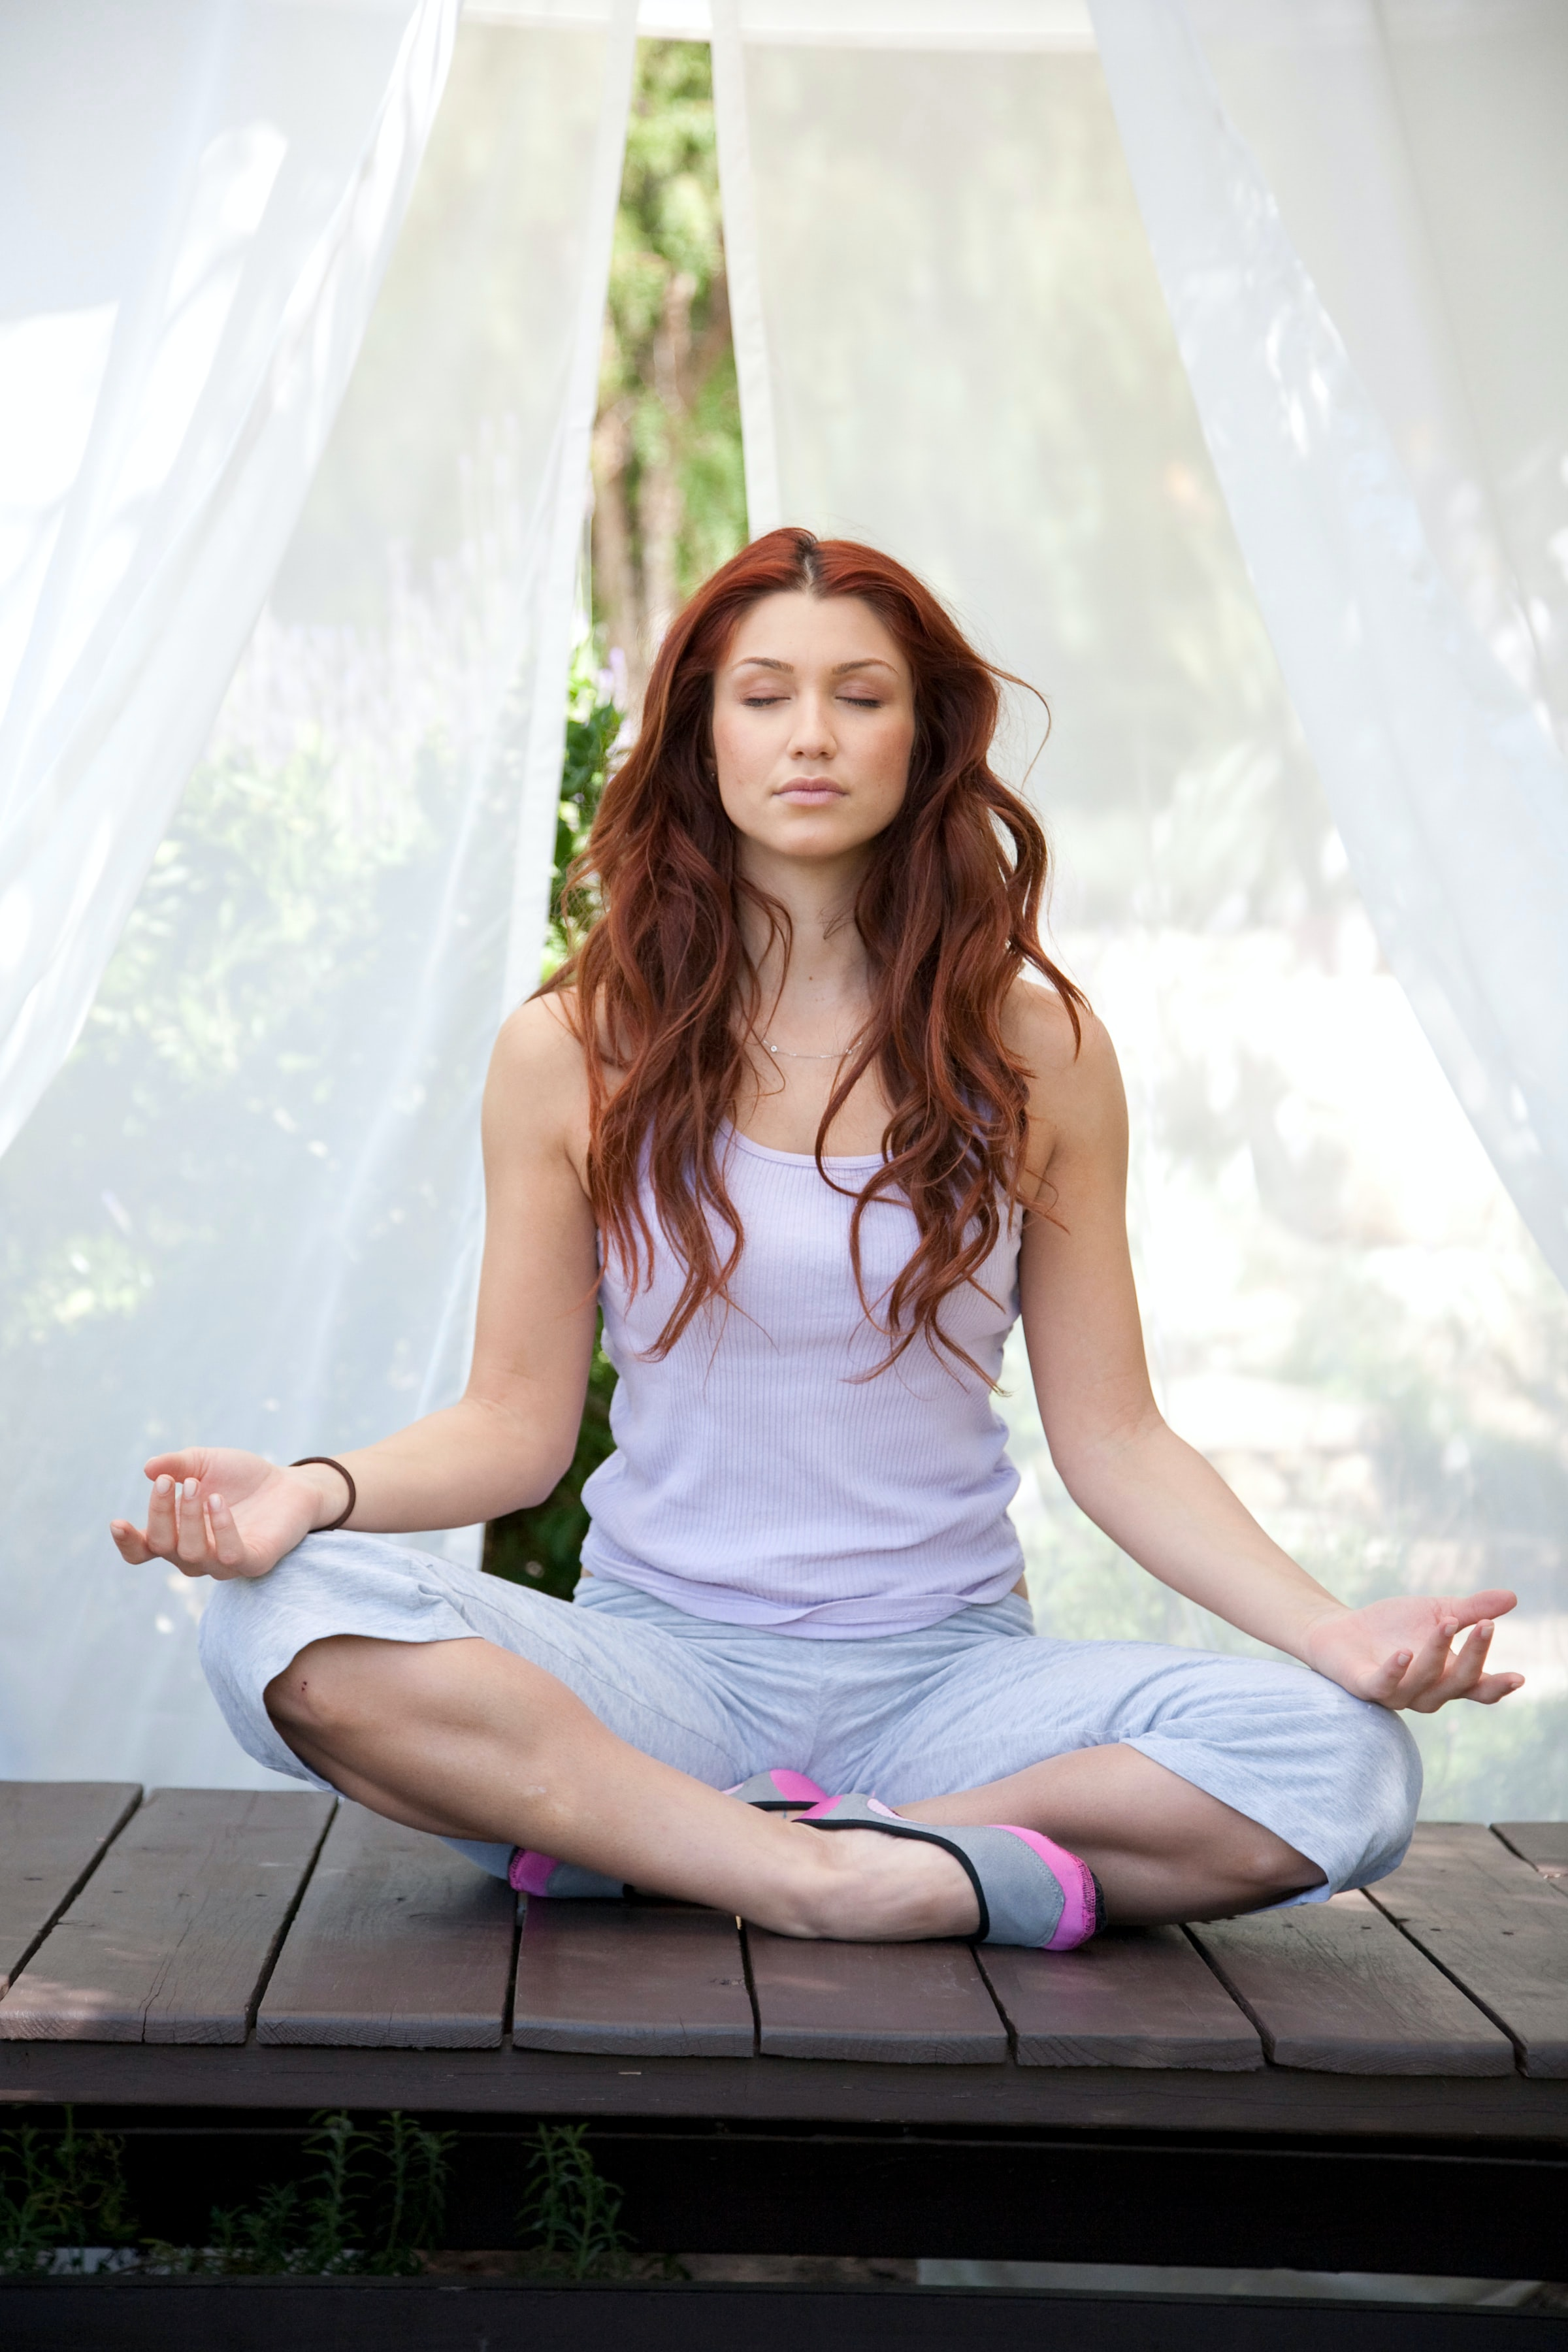 5-minute MIndfulness Meditations for Inner Peace